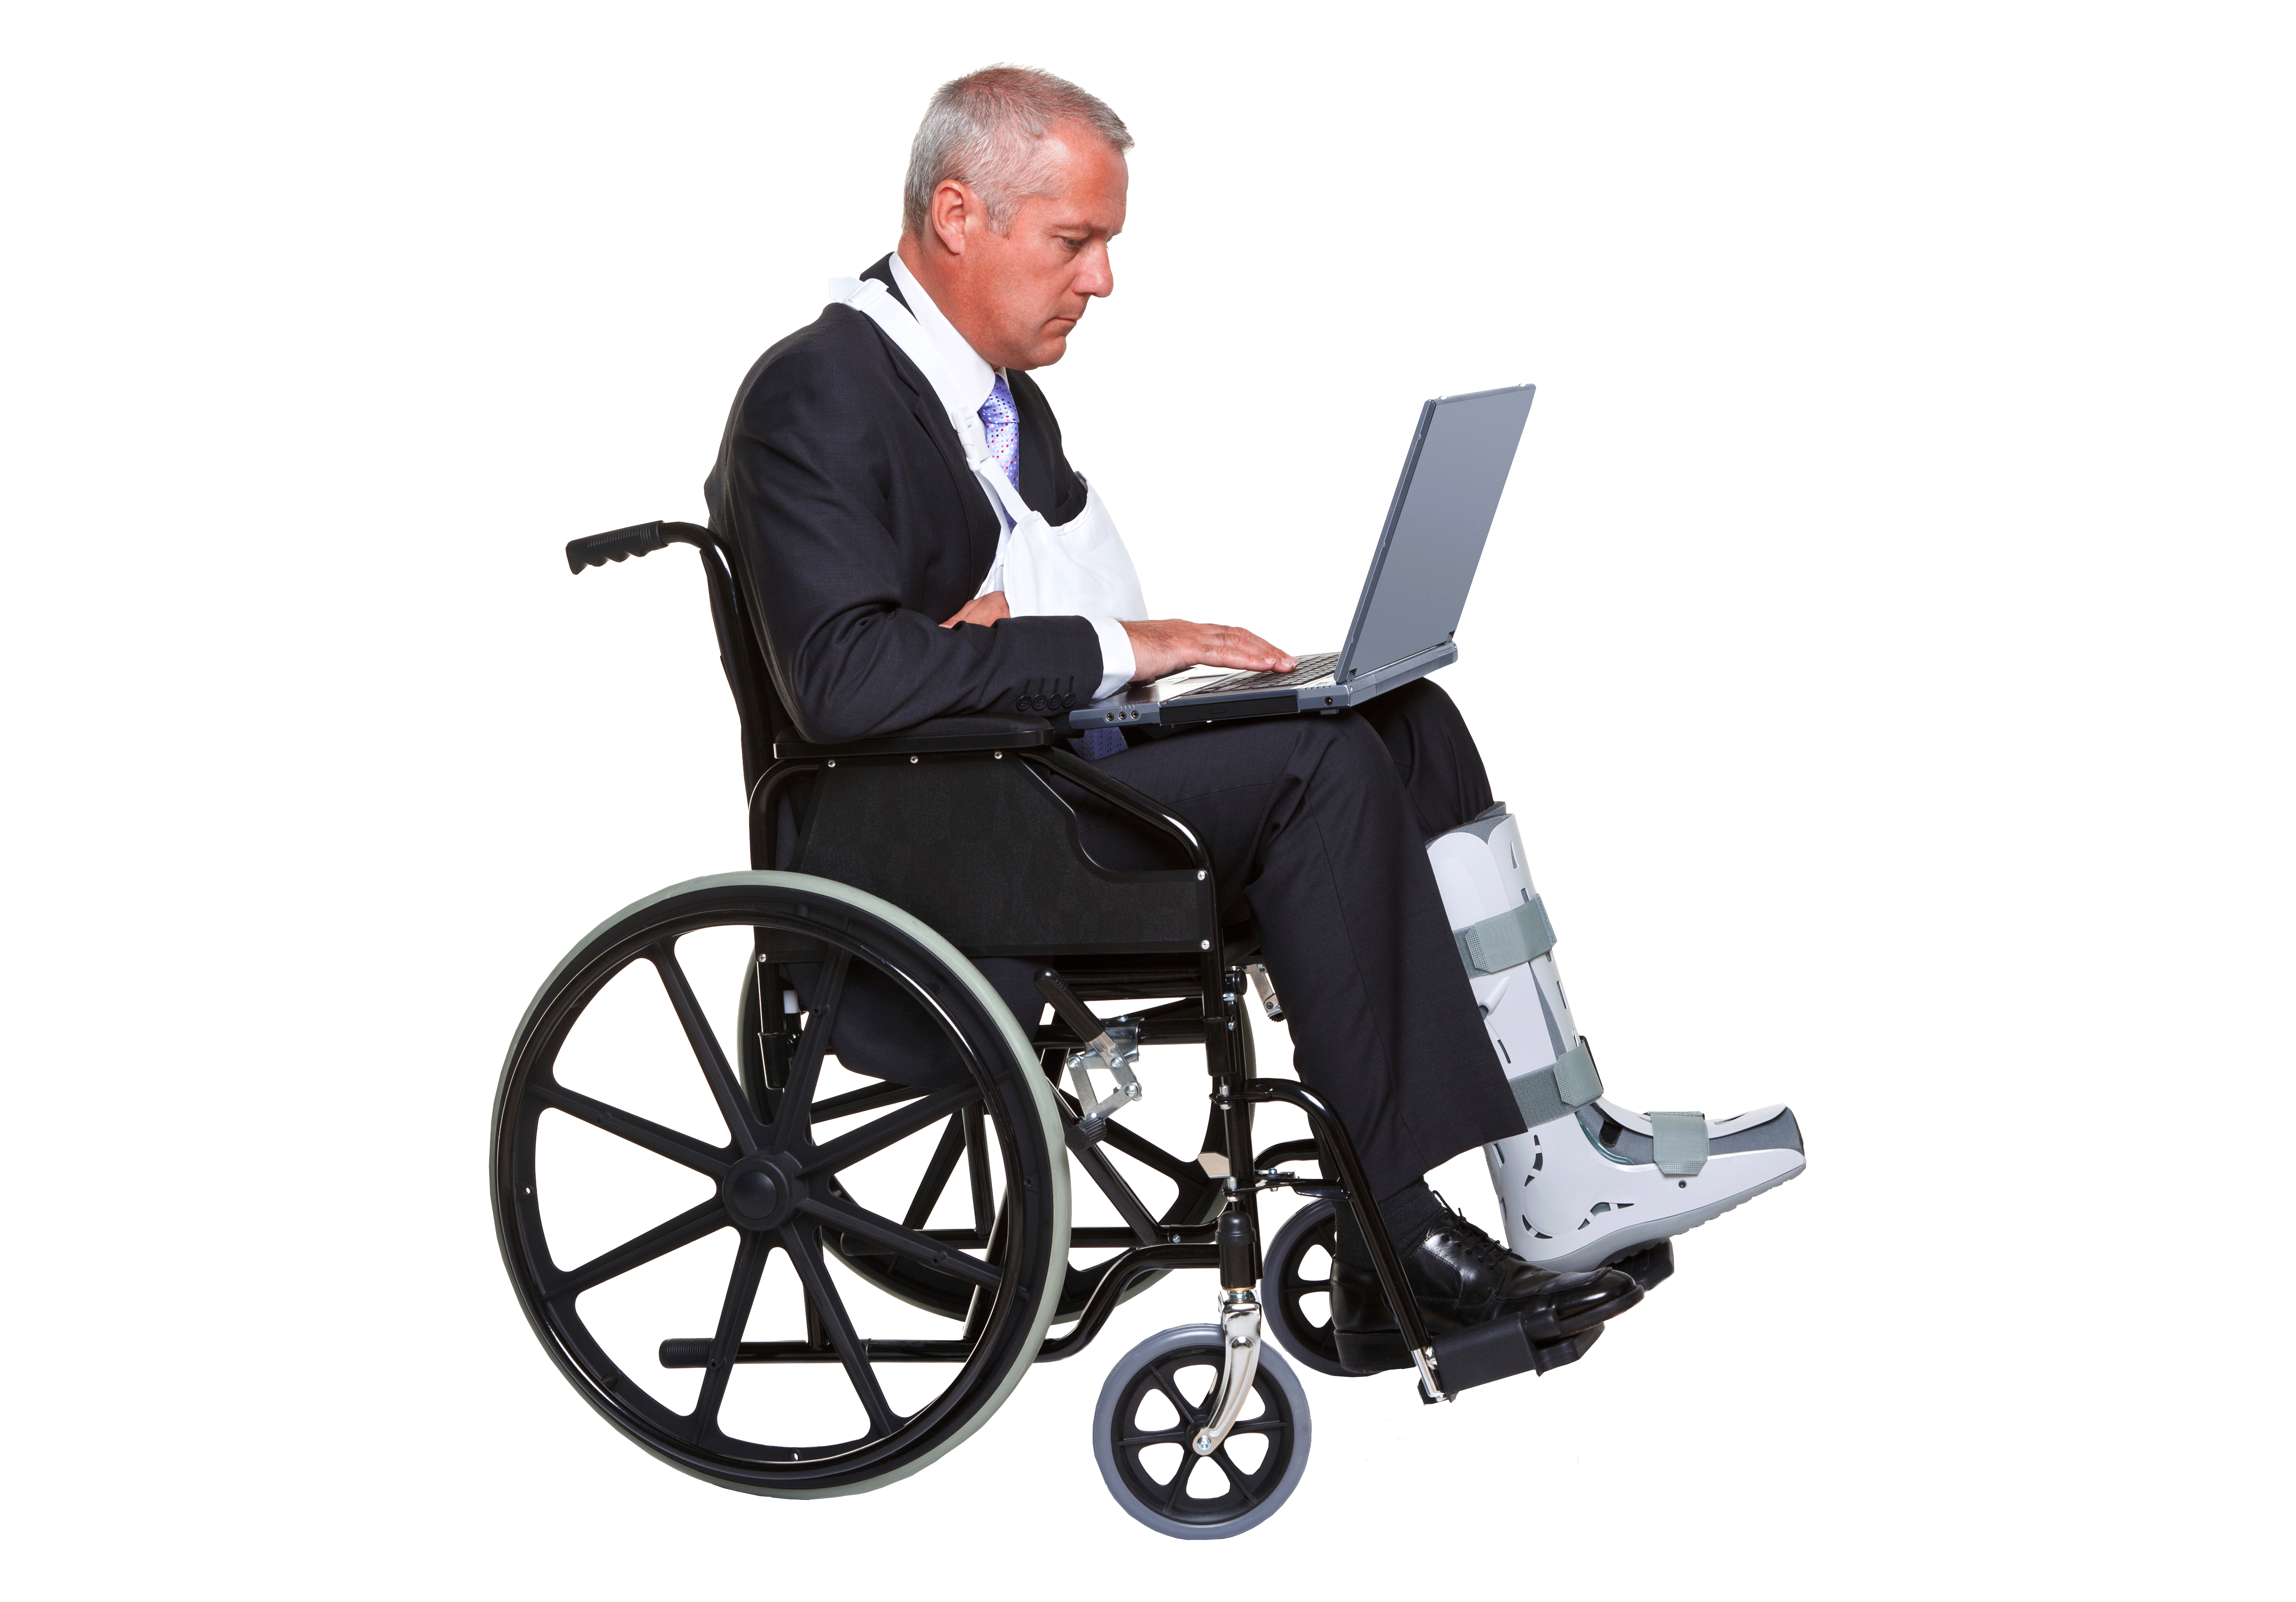 Wheelchair People Png image #40983